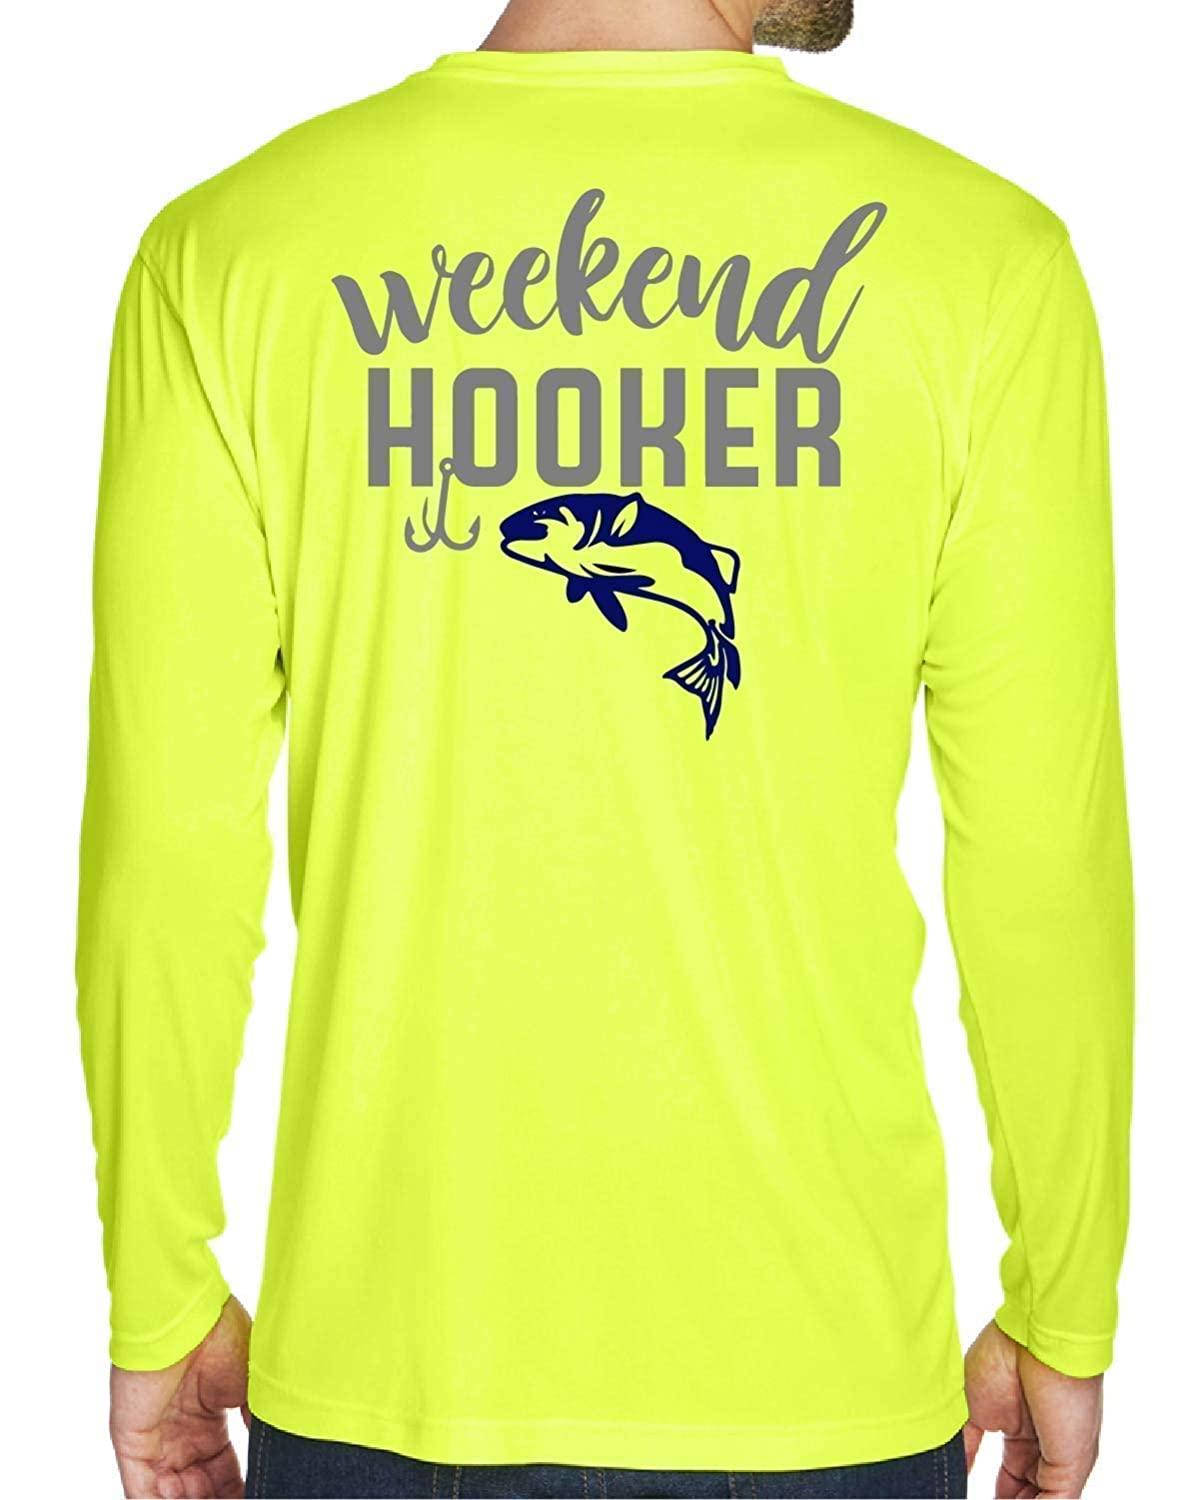 Industry No. 1 Weekend Hooker Fishing Shirt quality assurance Long Cool T-shirt Funny Dry Sleeve